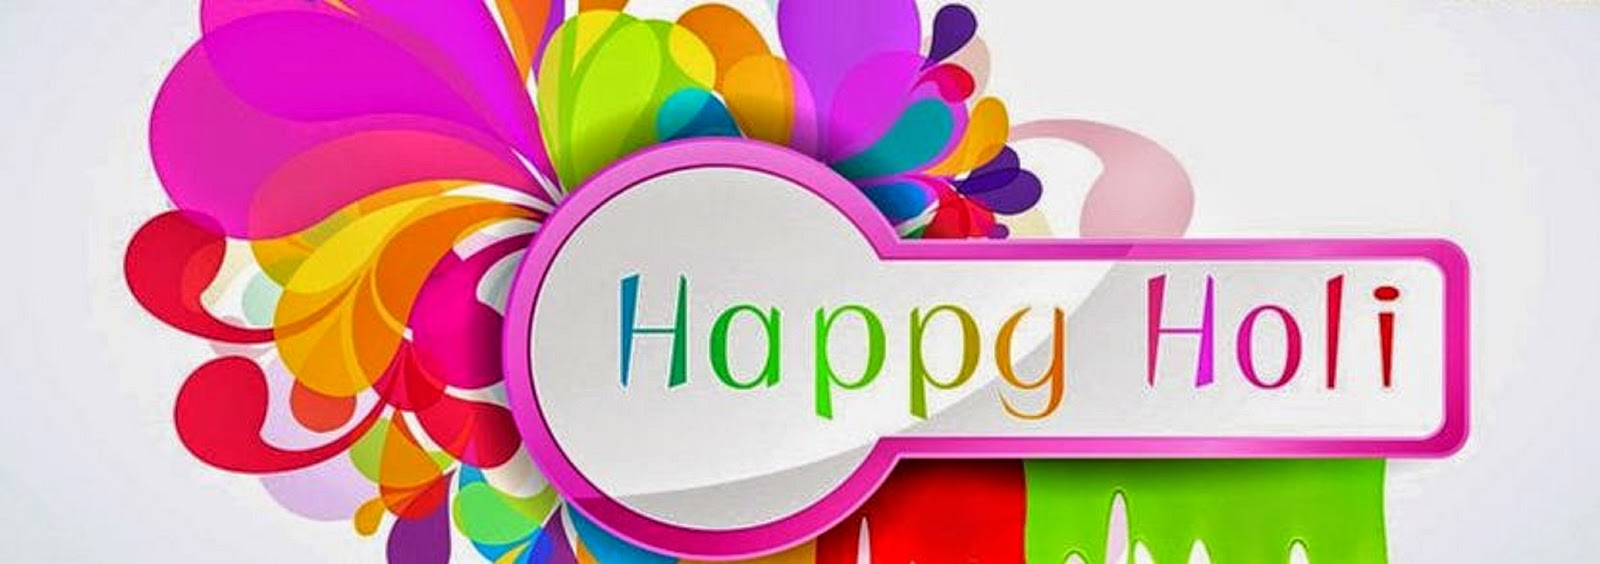 Happy wallpaper download new. 2016 clipart holi